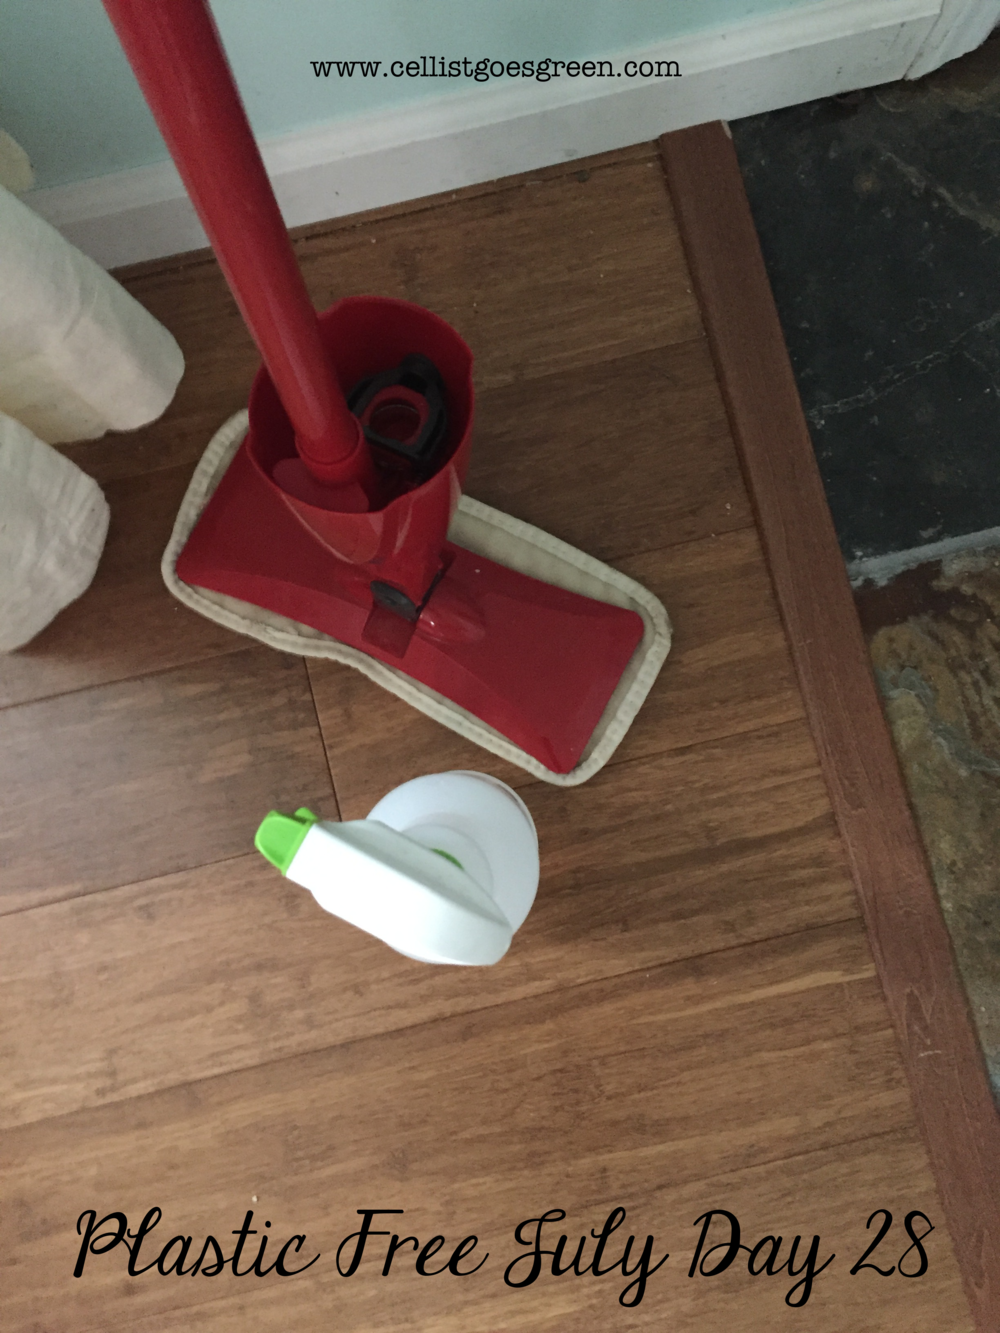 Plastic Free July Day 28: Mopping without disposable plastic | Cellist Goes Green